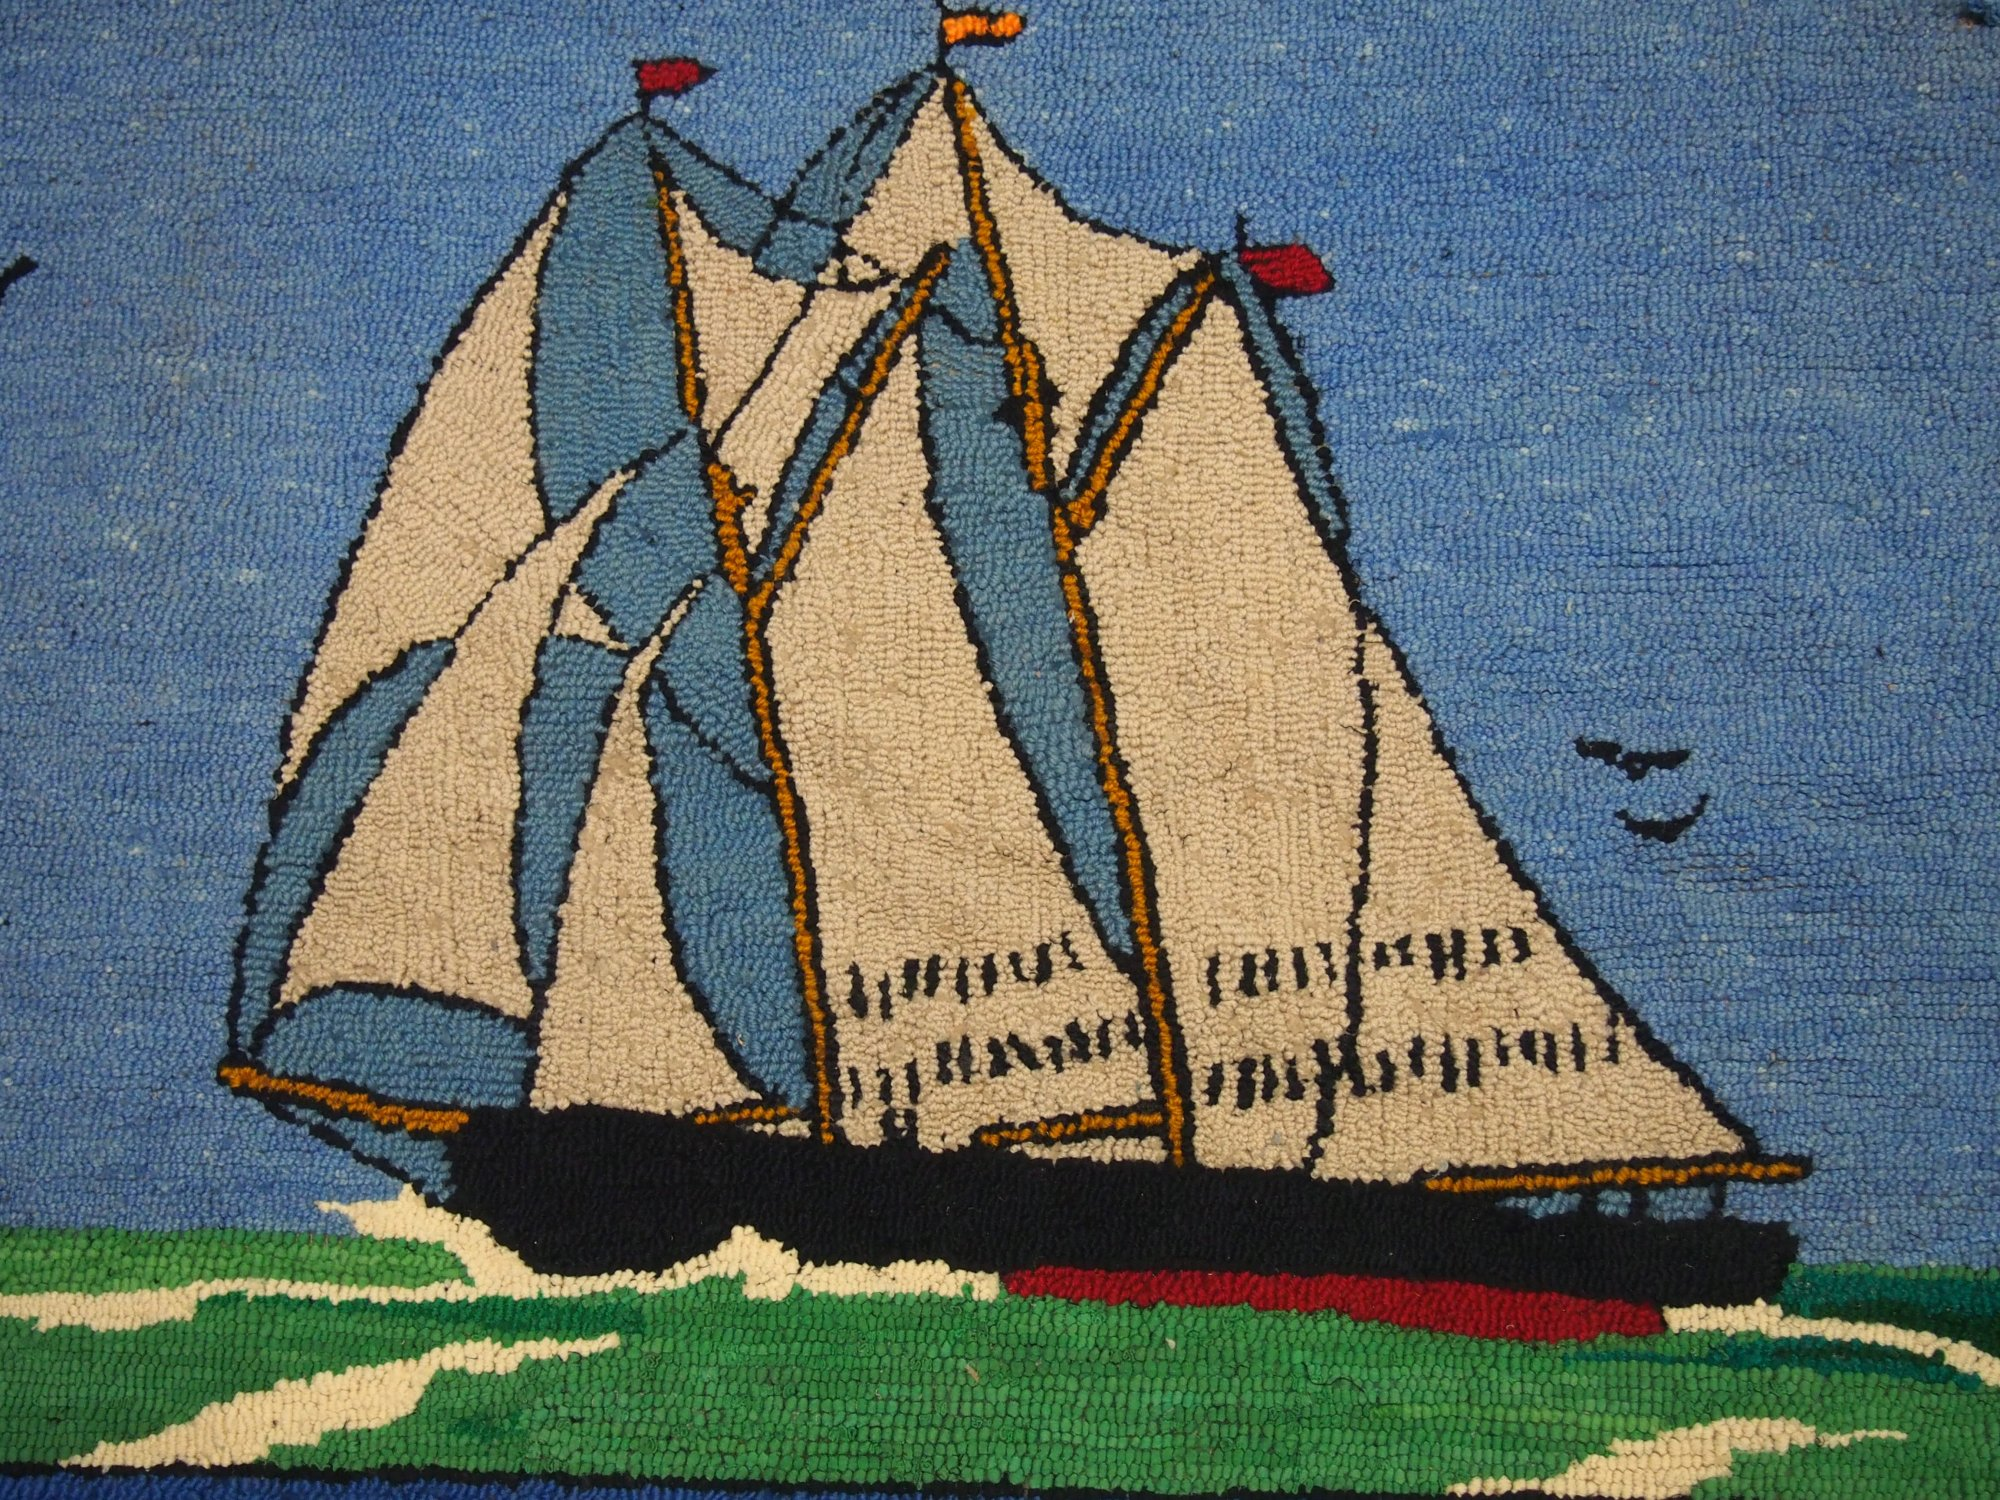 SHIP BLUENOSE ANTIQUE HOOKED RUG